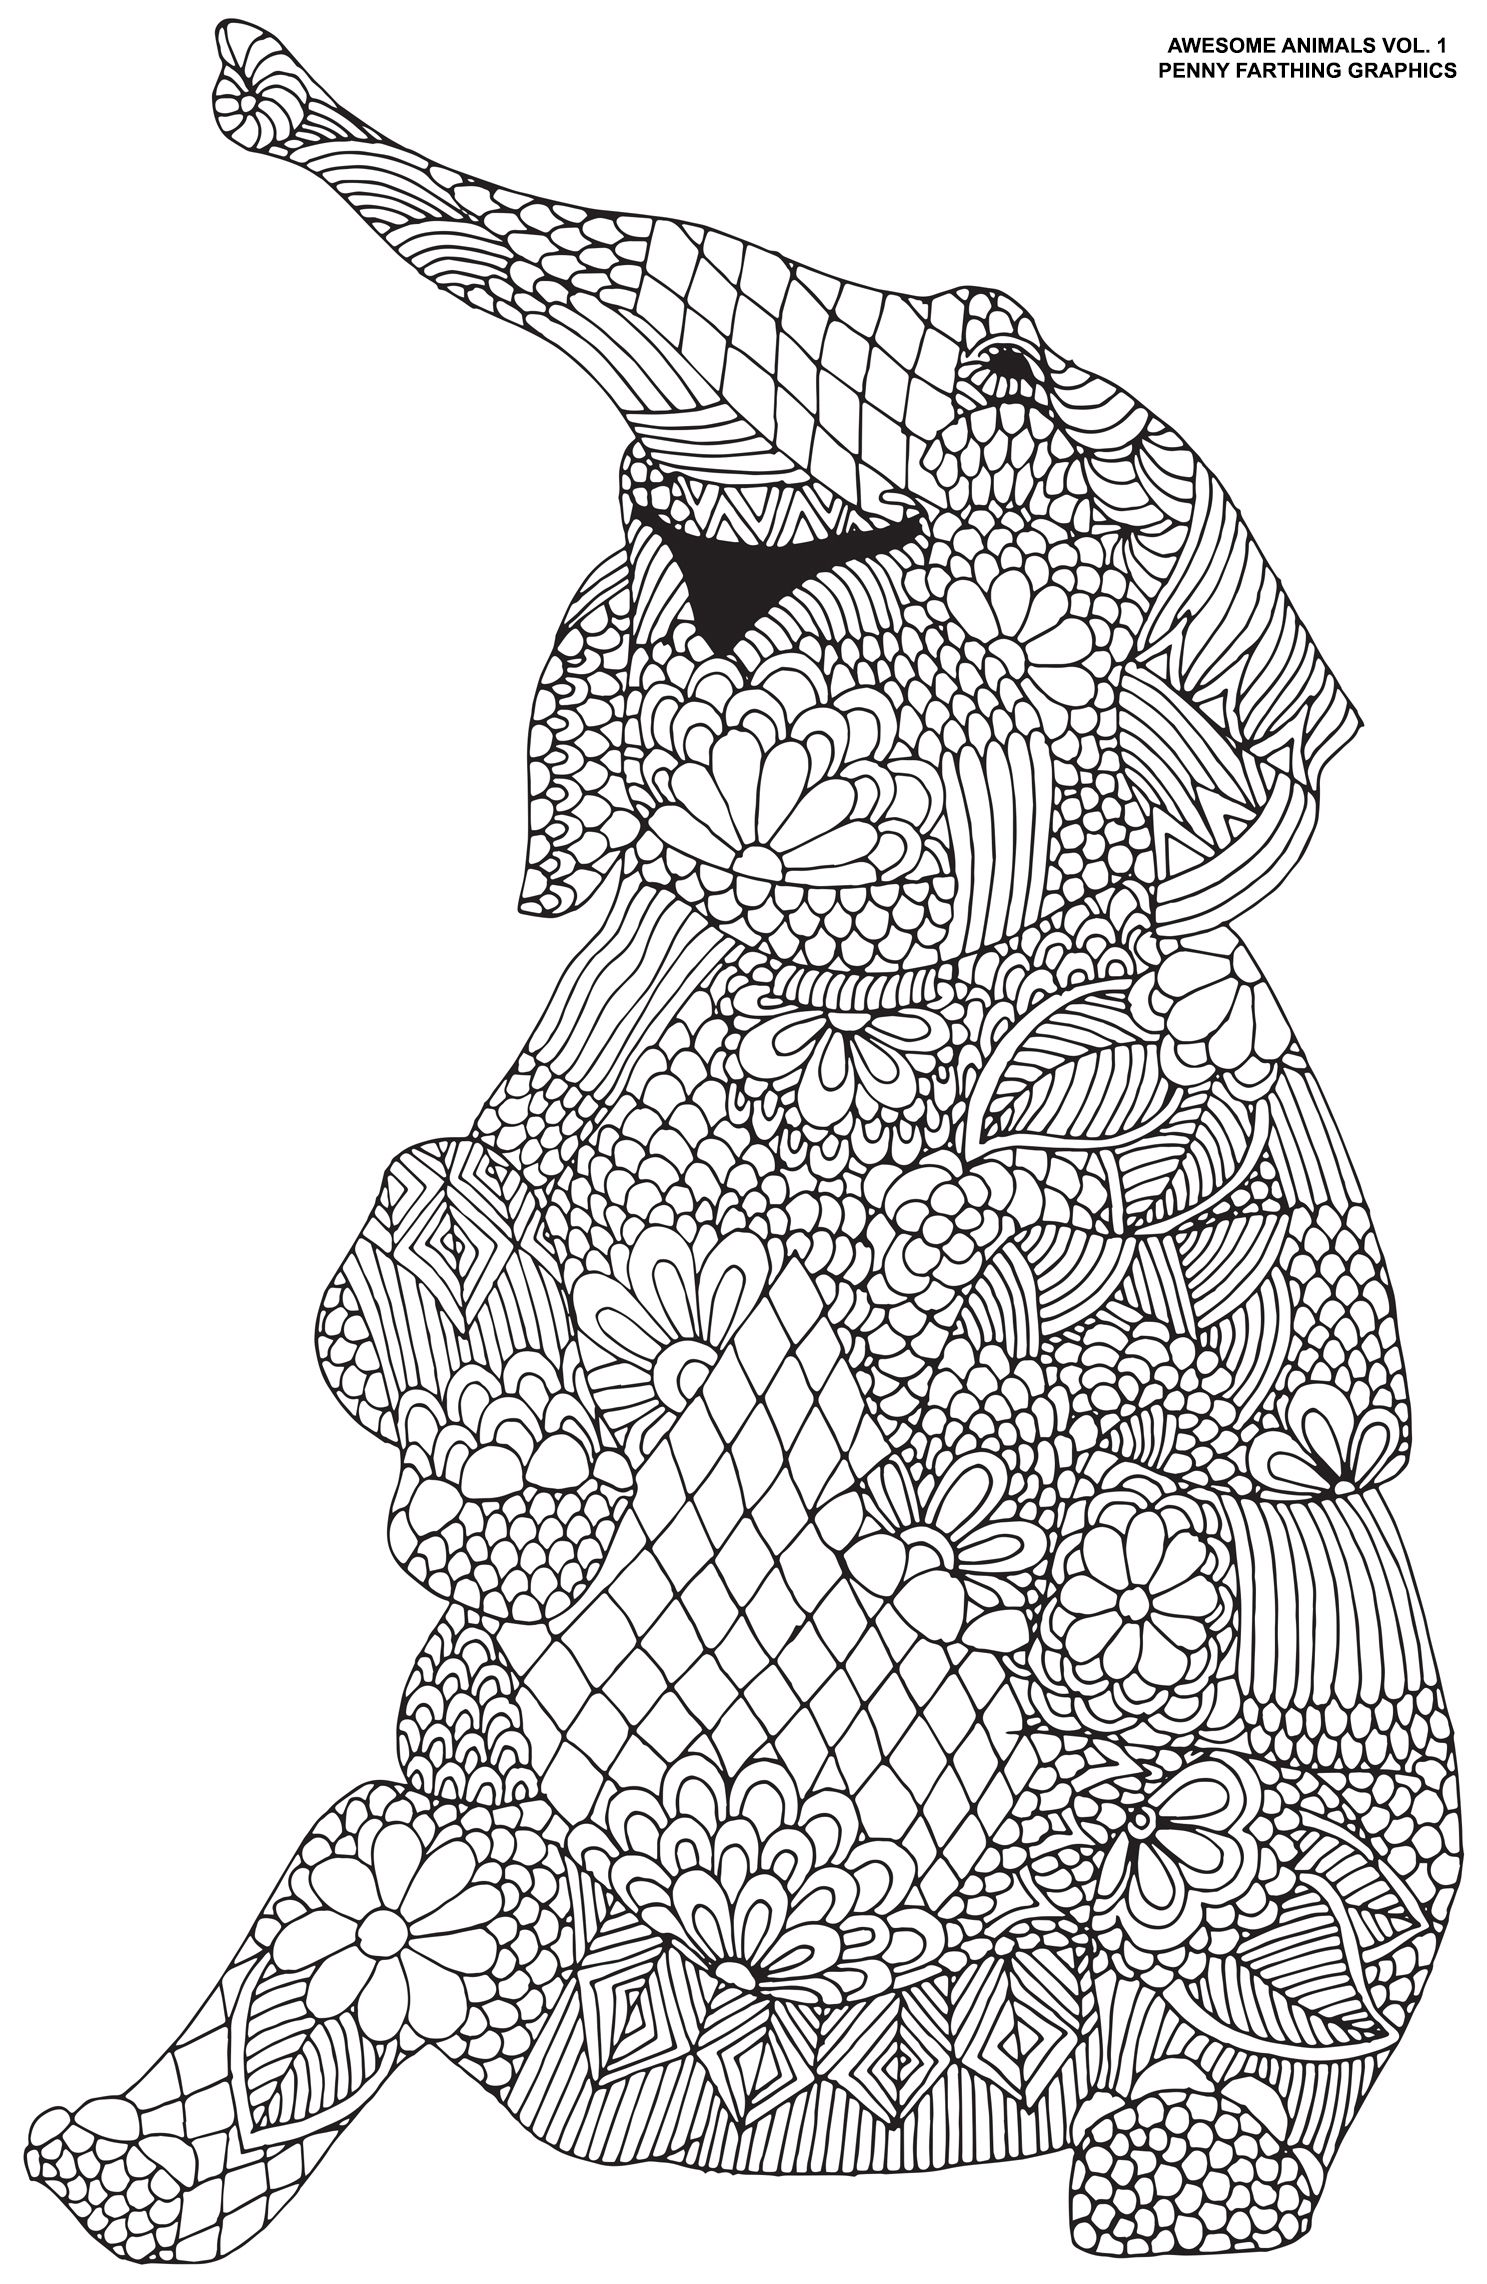 The Cute Elephant From Awesome Animals Elephant Coloring Page